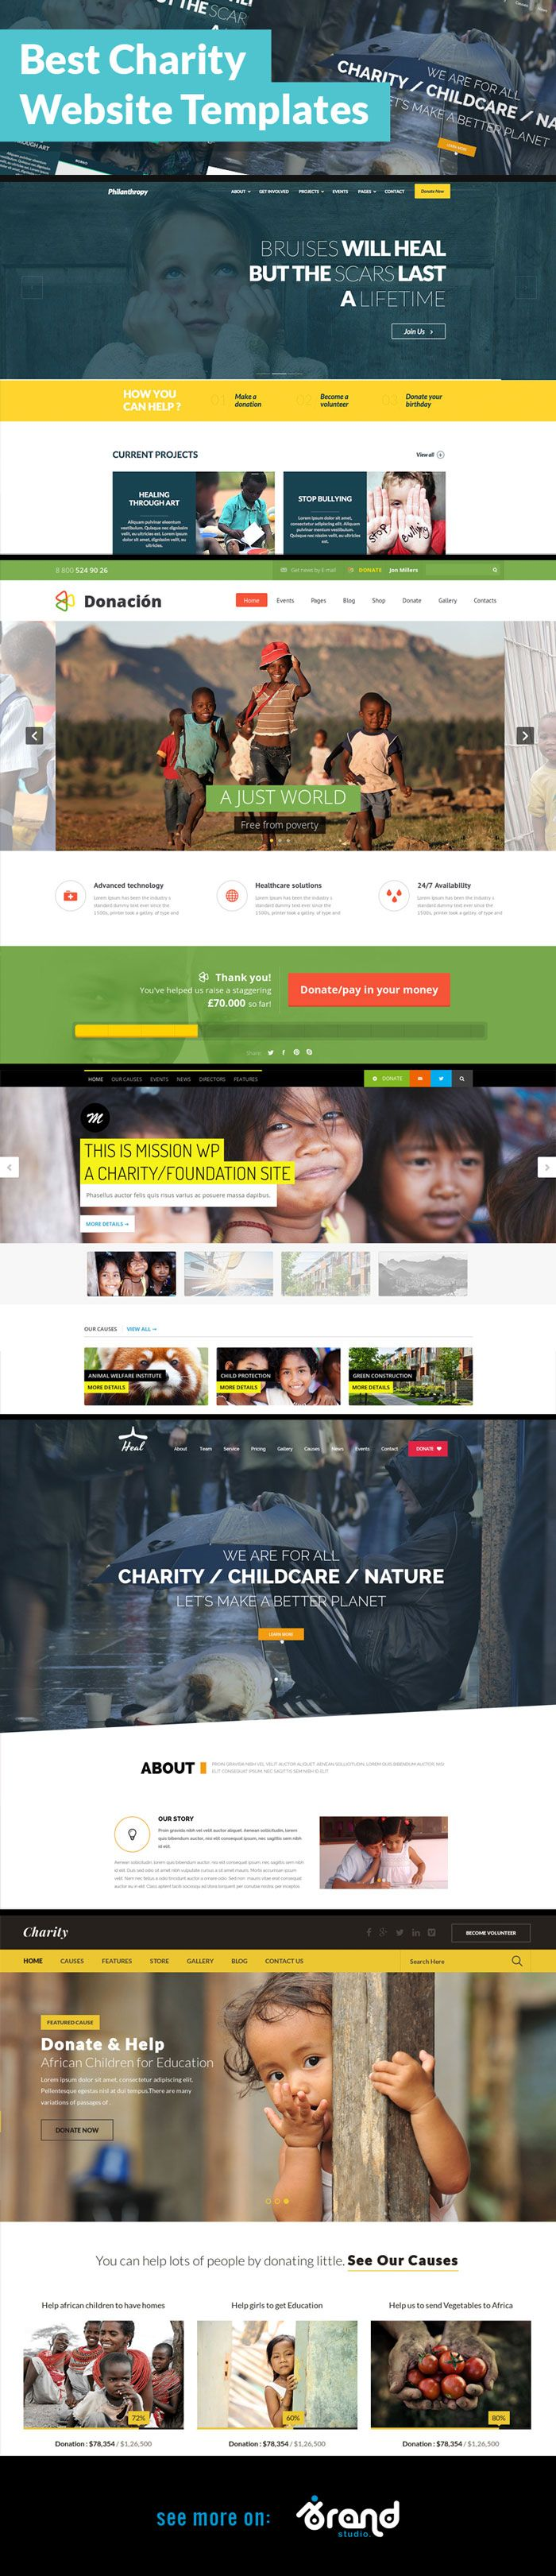 11 Effectively Designed Non-profit anc #Charity #Website Templates